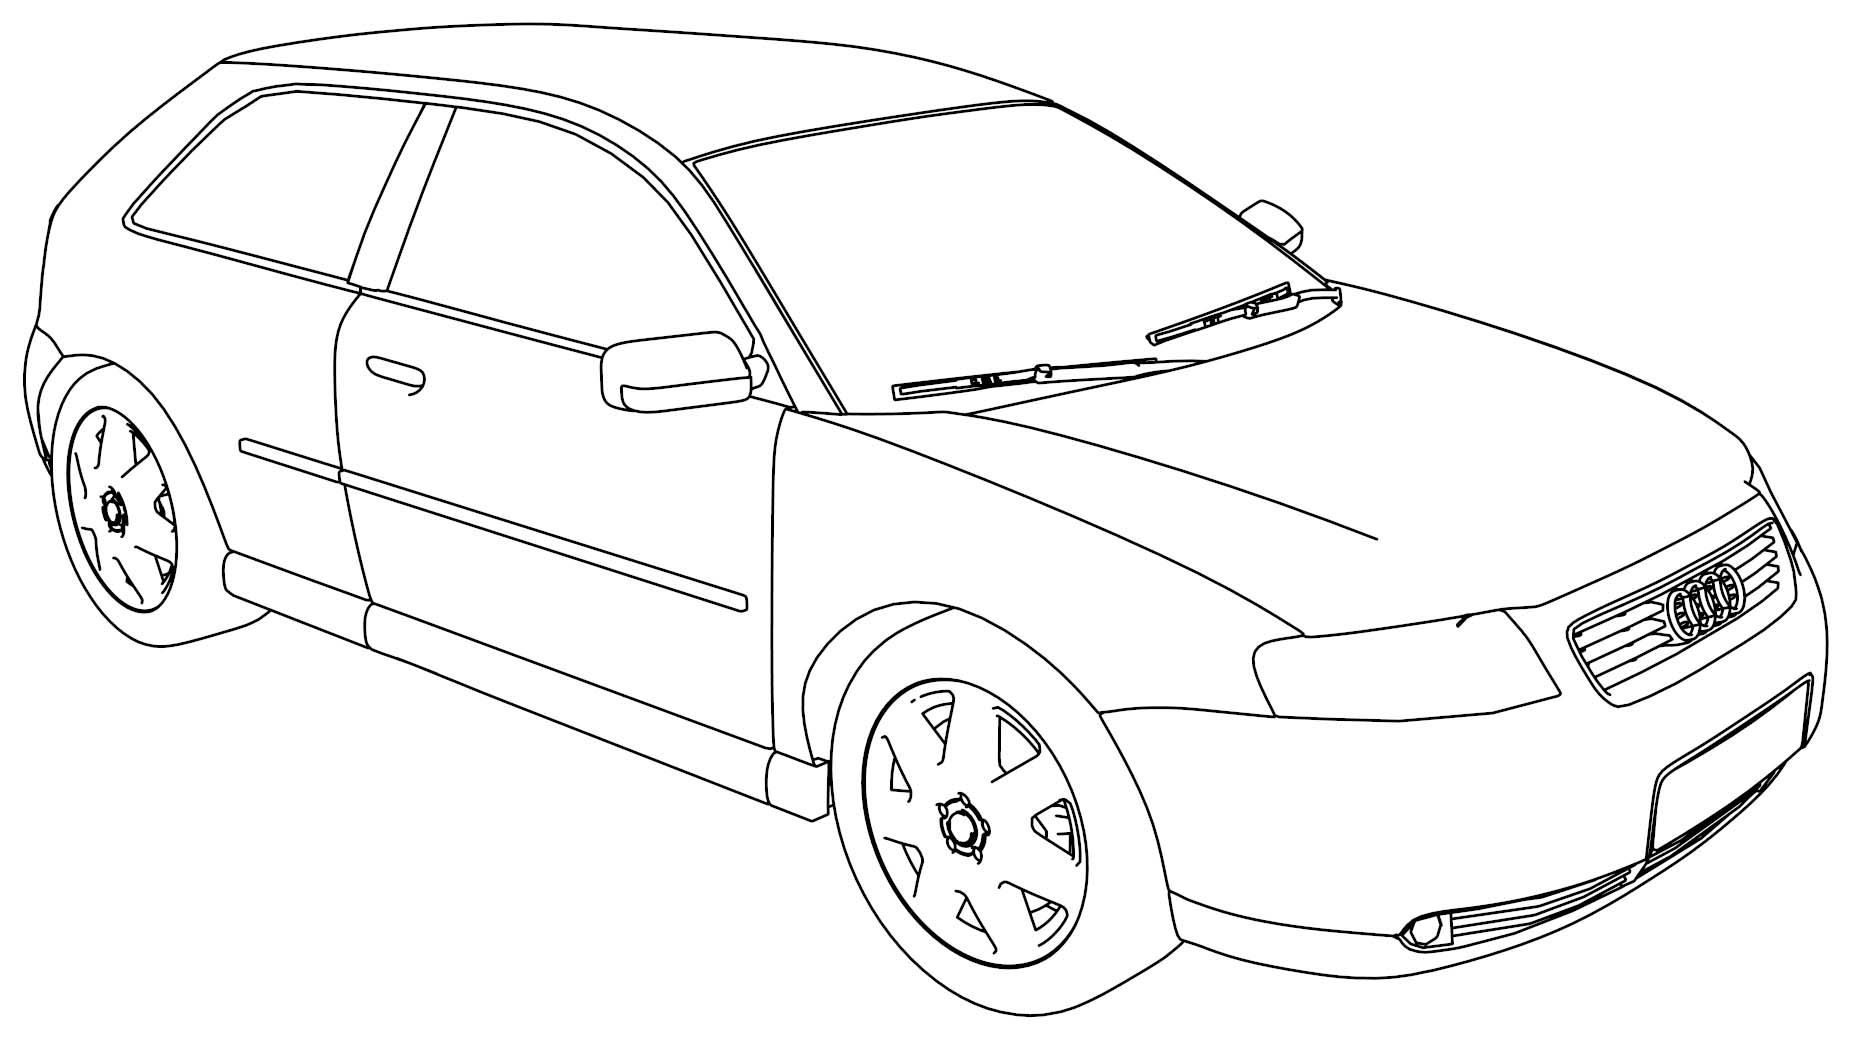 awesome audi a3 coloring page wecoloringpage audi audi a3 cars Abt Audi RS6 awesome audi a3 coloring page